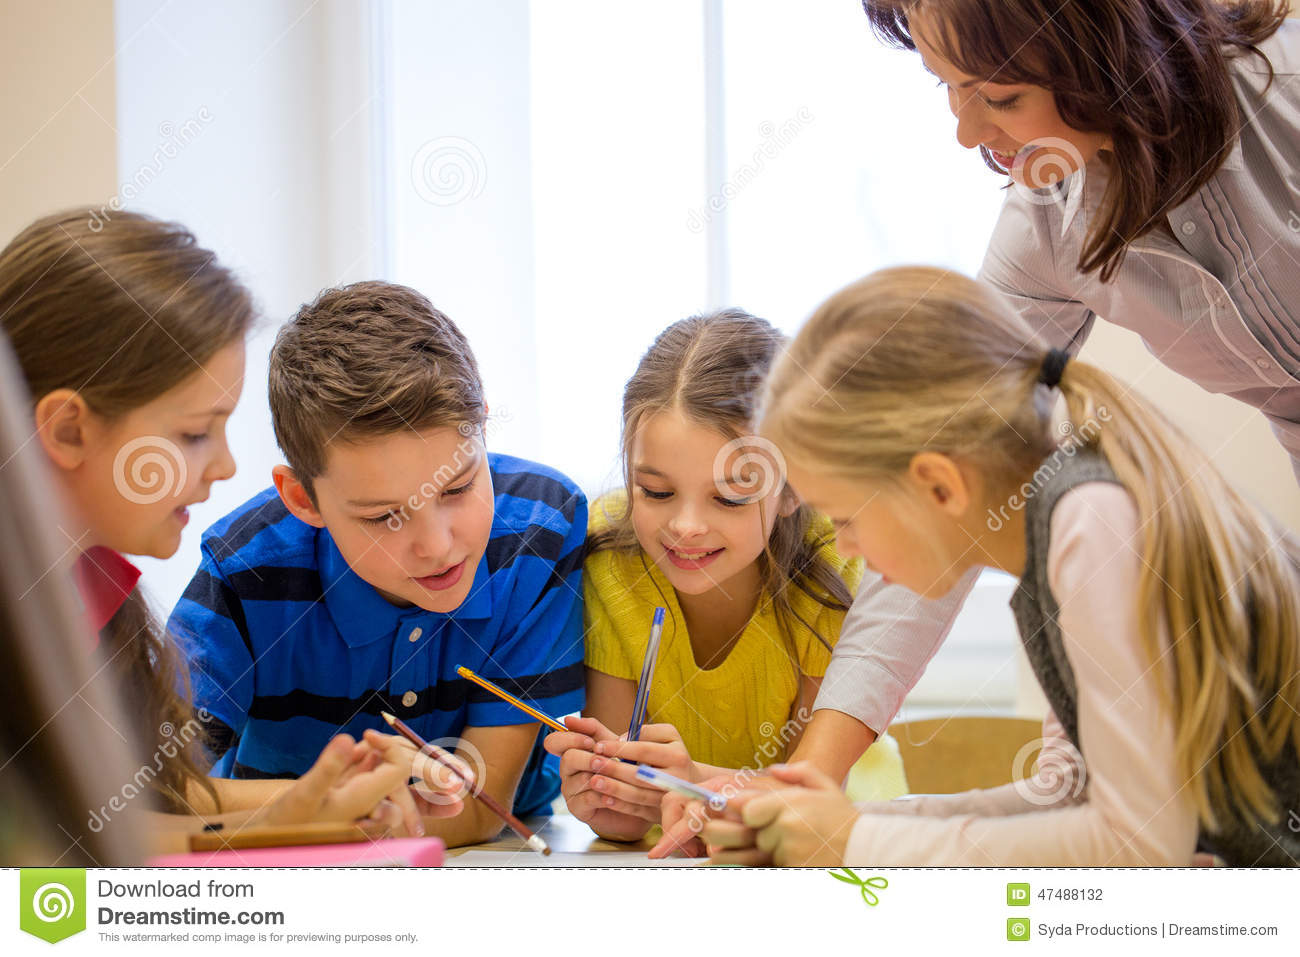 teaching essay writing in elementary school Few skills are as critical to educational success as essay writing for elementary students.